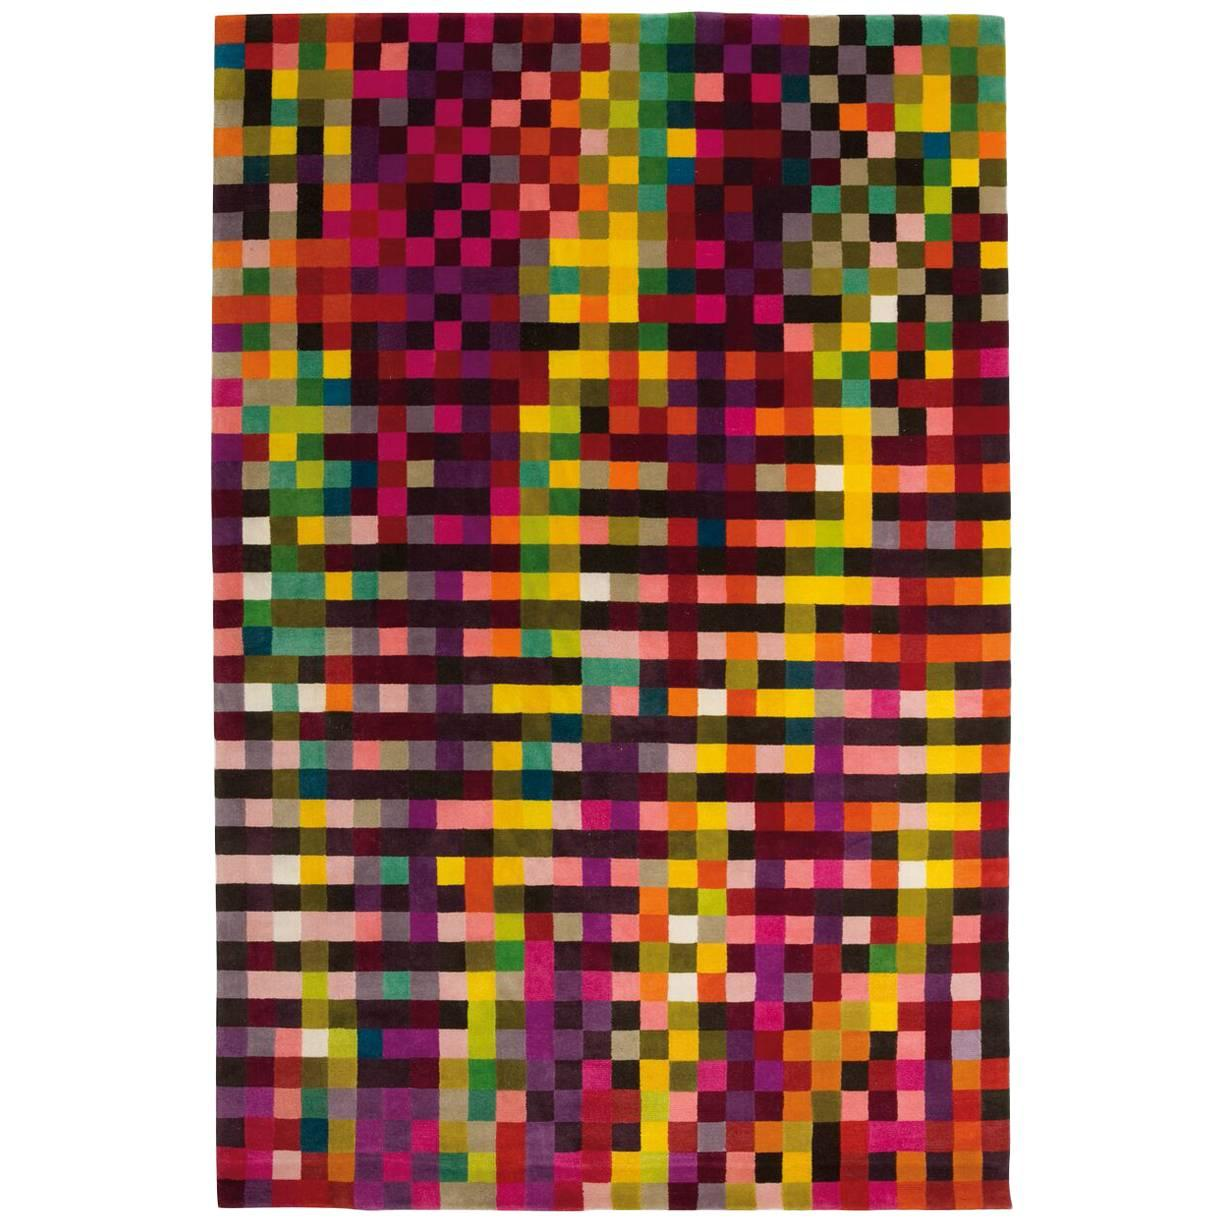 Digit 1 Hand-Knotted Wool Area Rug by Cristian Zuzunaga Large